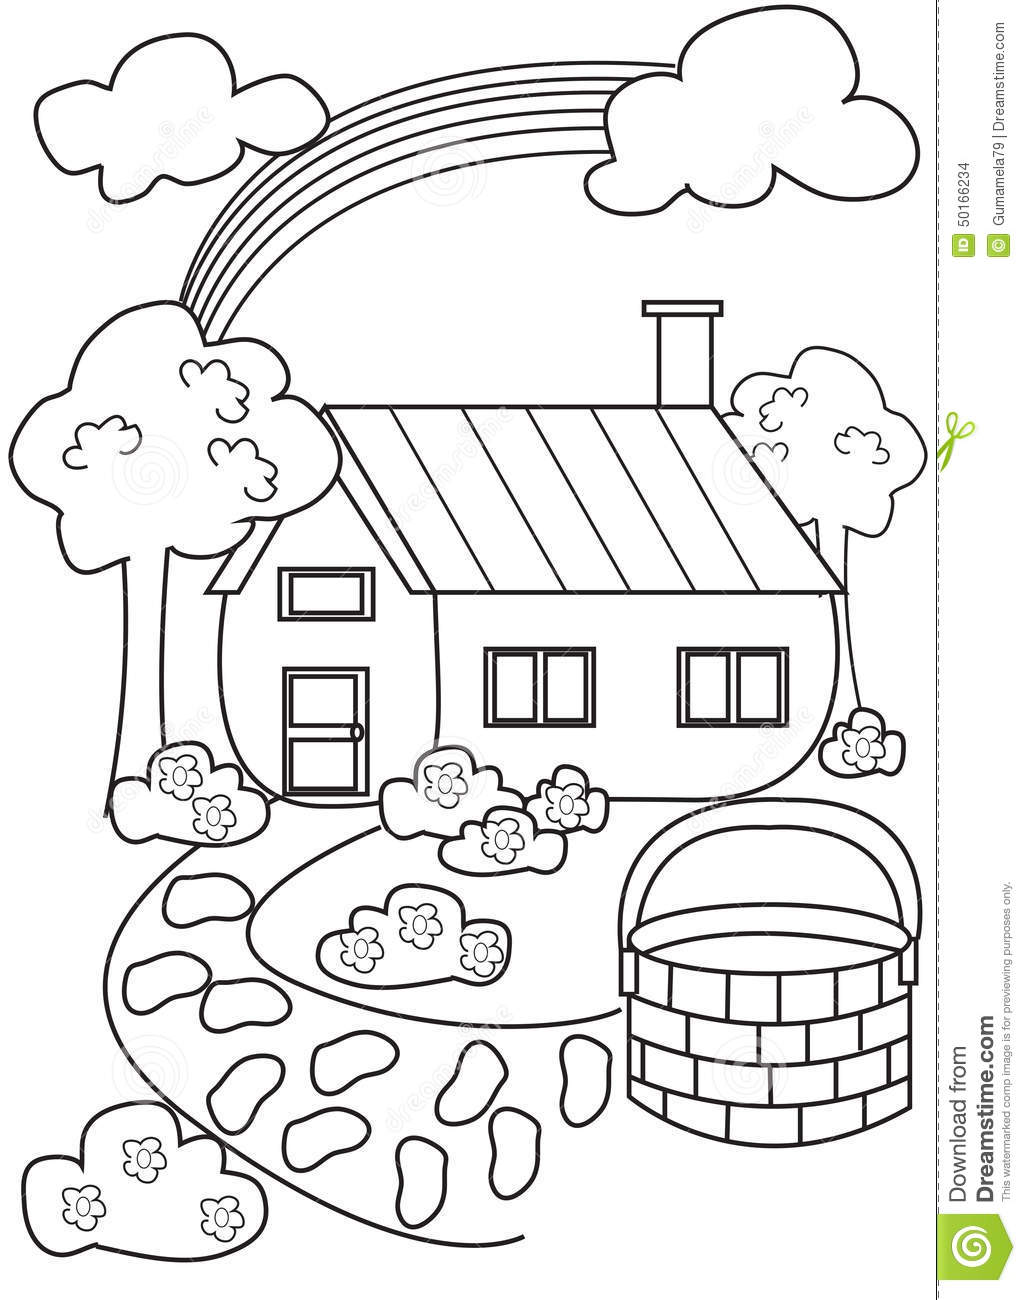 1026x1300 Learn Colors For Kids House Coloring Page Rabbit Book Bird